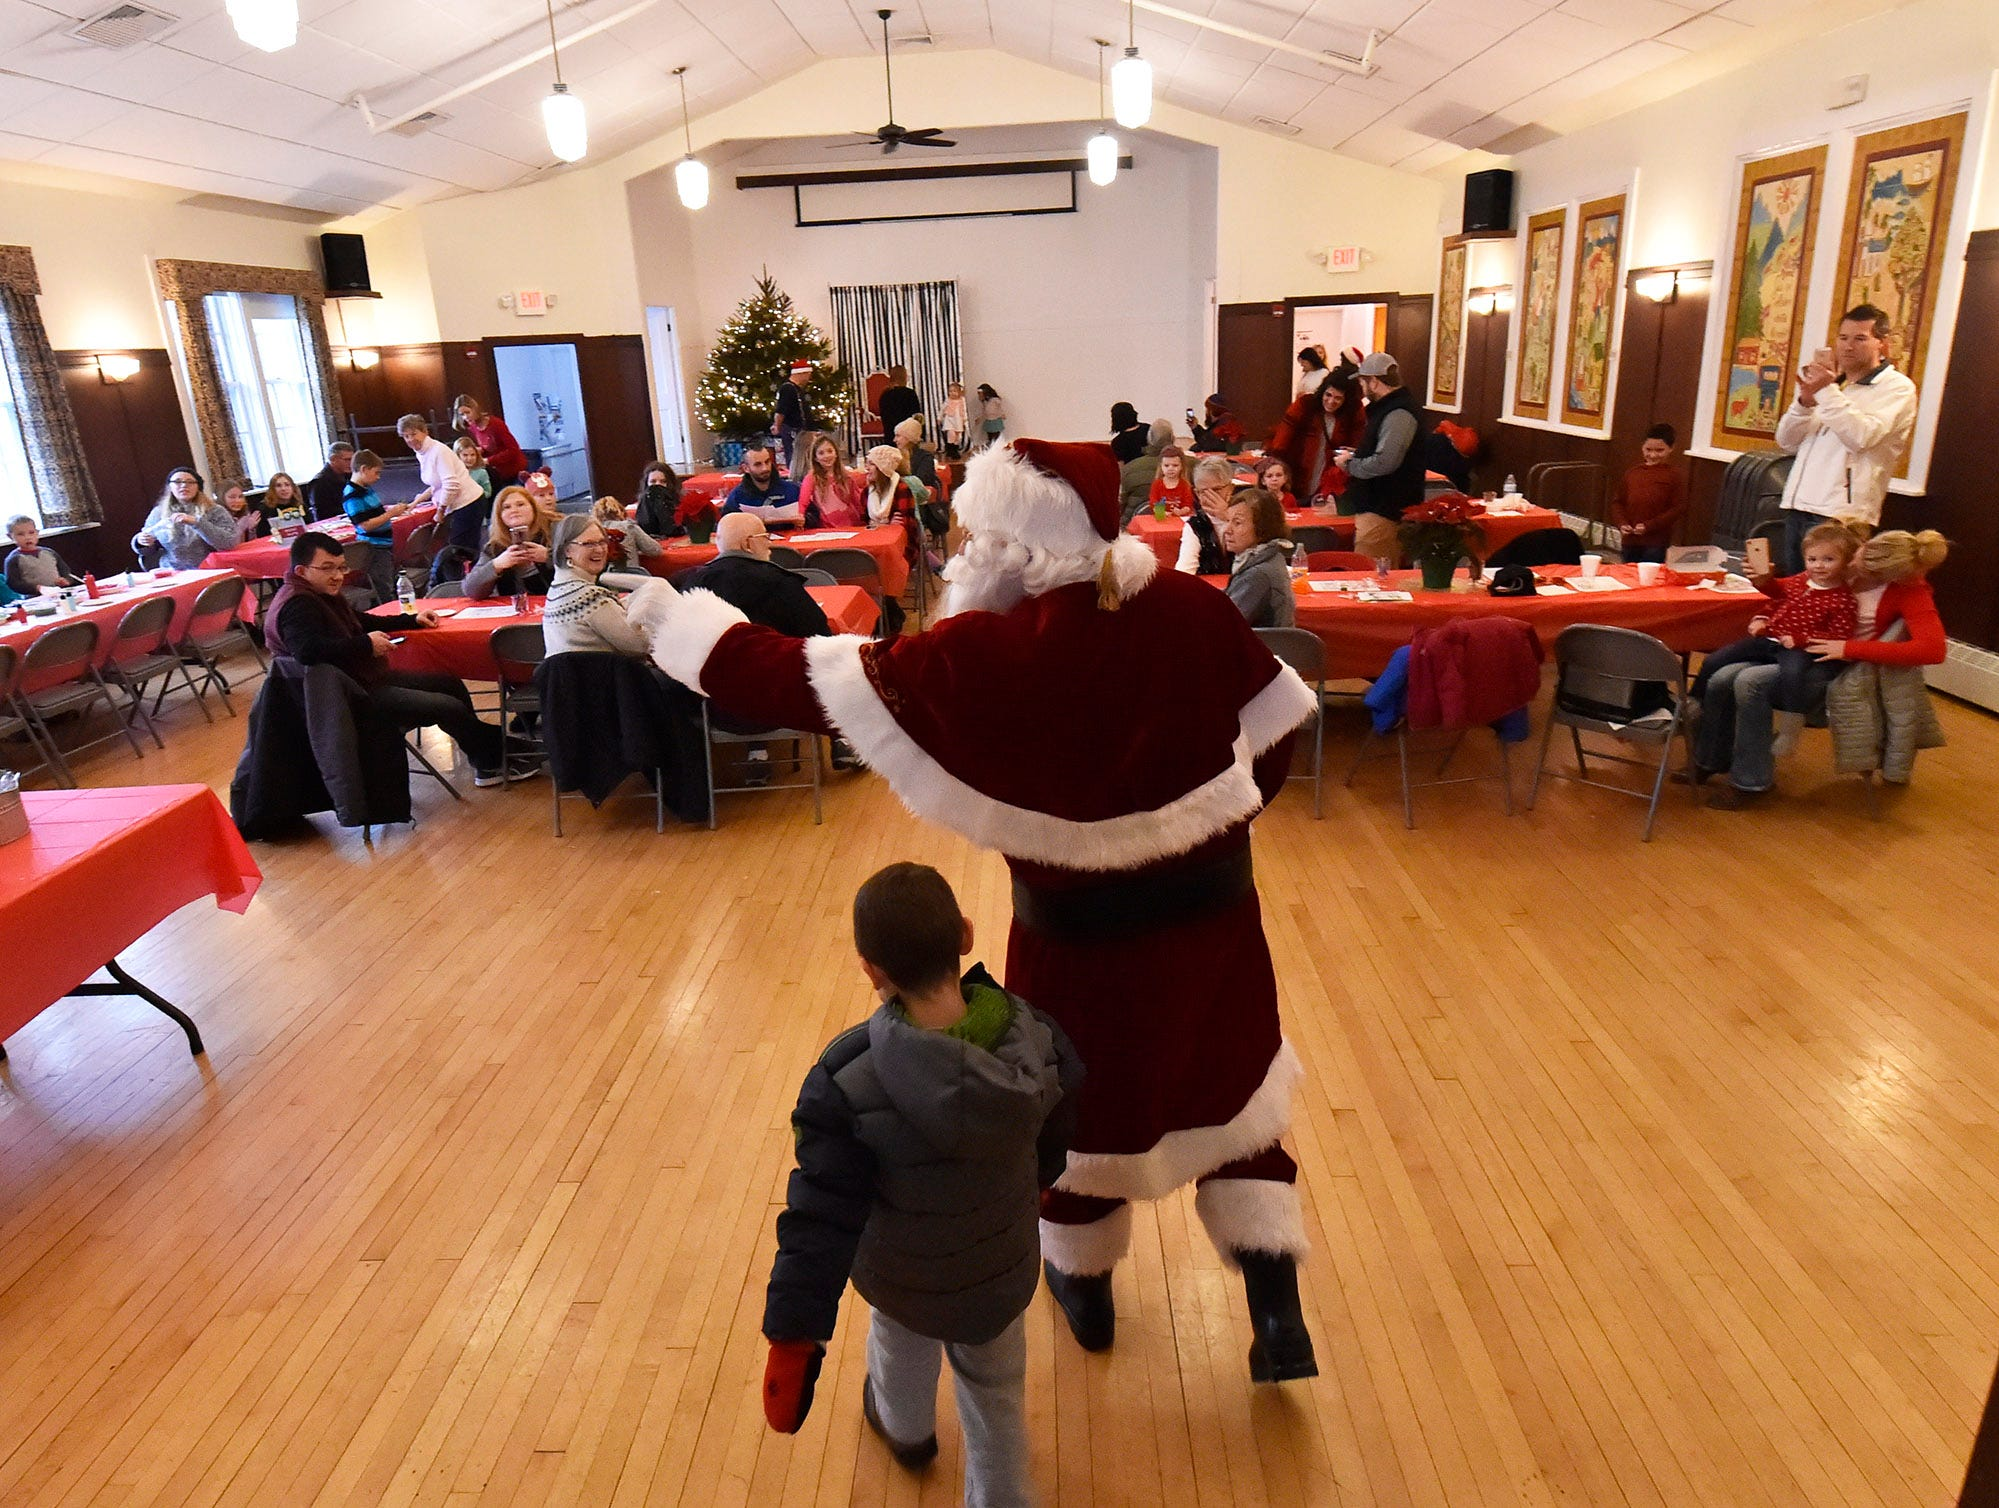 To everybody's delight, Santa makes his grand entrance at Village Hall during Christmas in the Village in Ephraim on Saturday, Dec. 1, 2018. Tina M. Gohr/USA TODAY NETWORK-Wisconsin